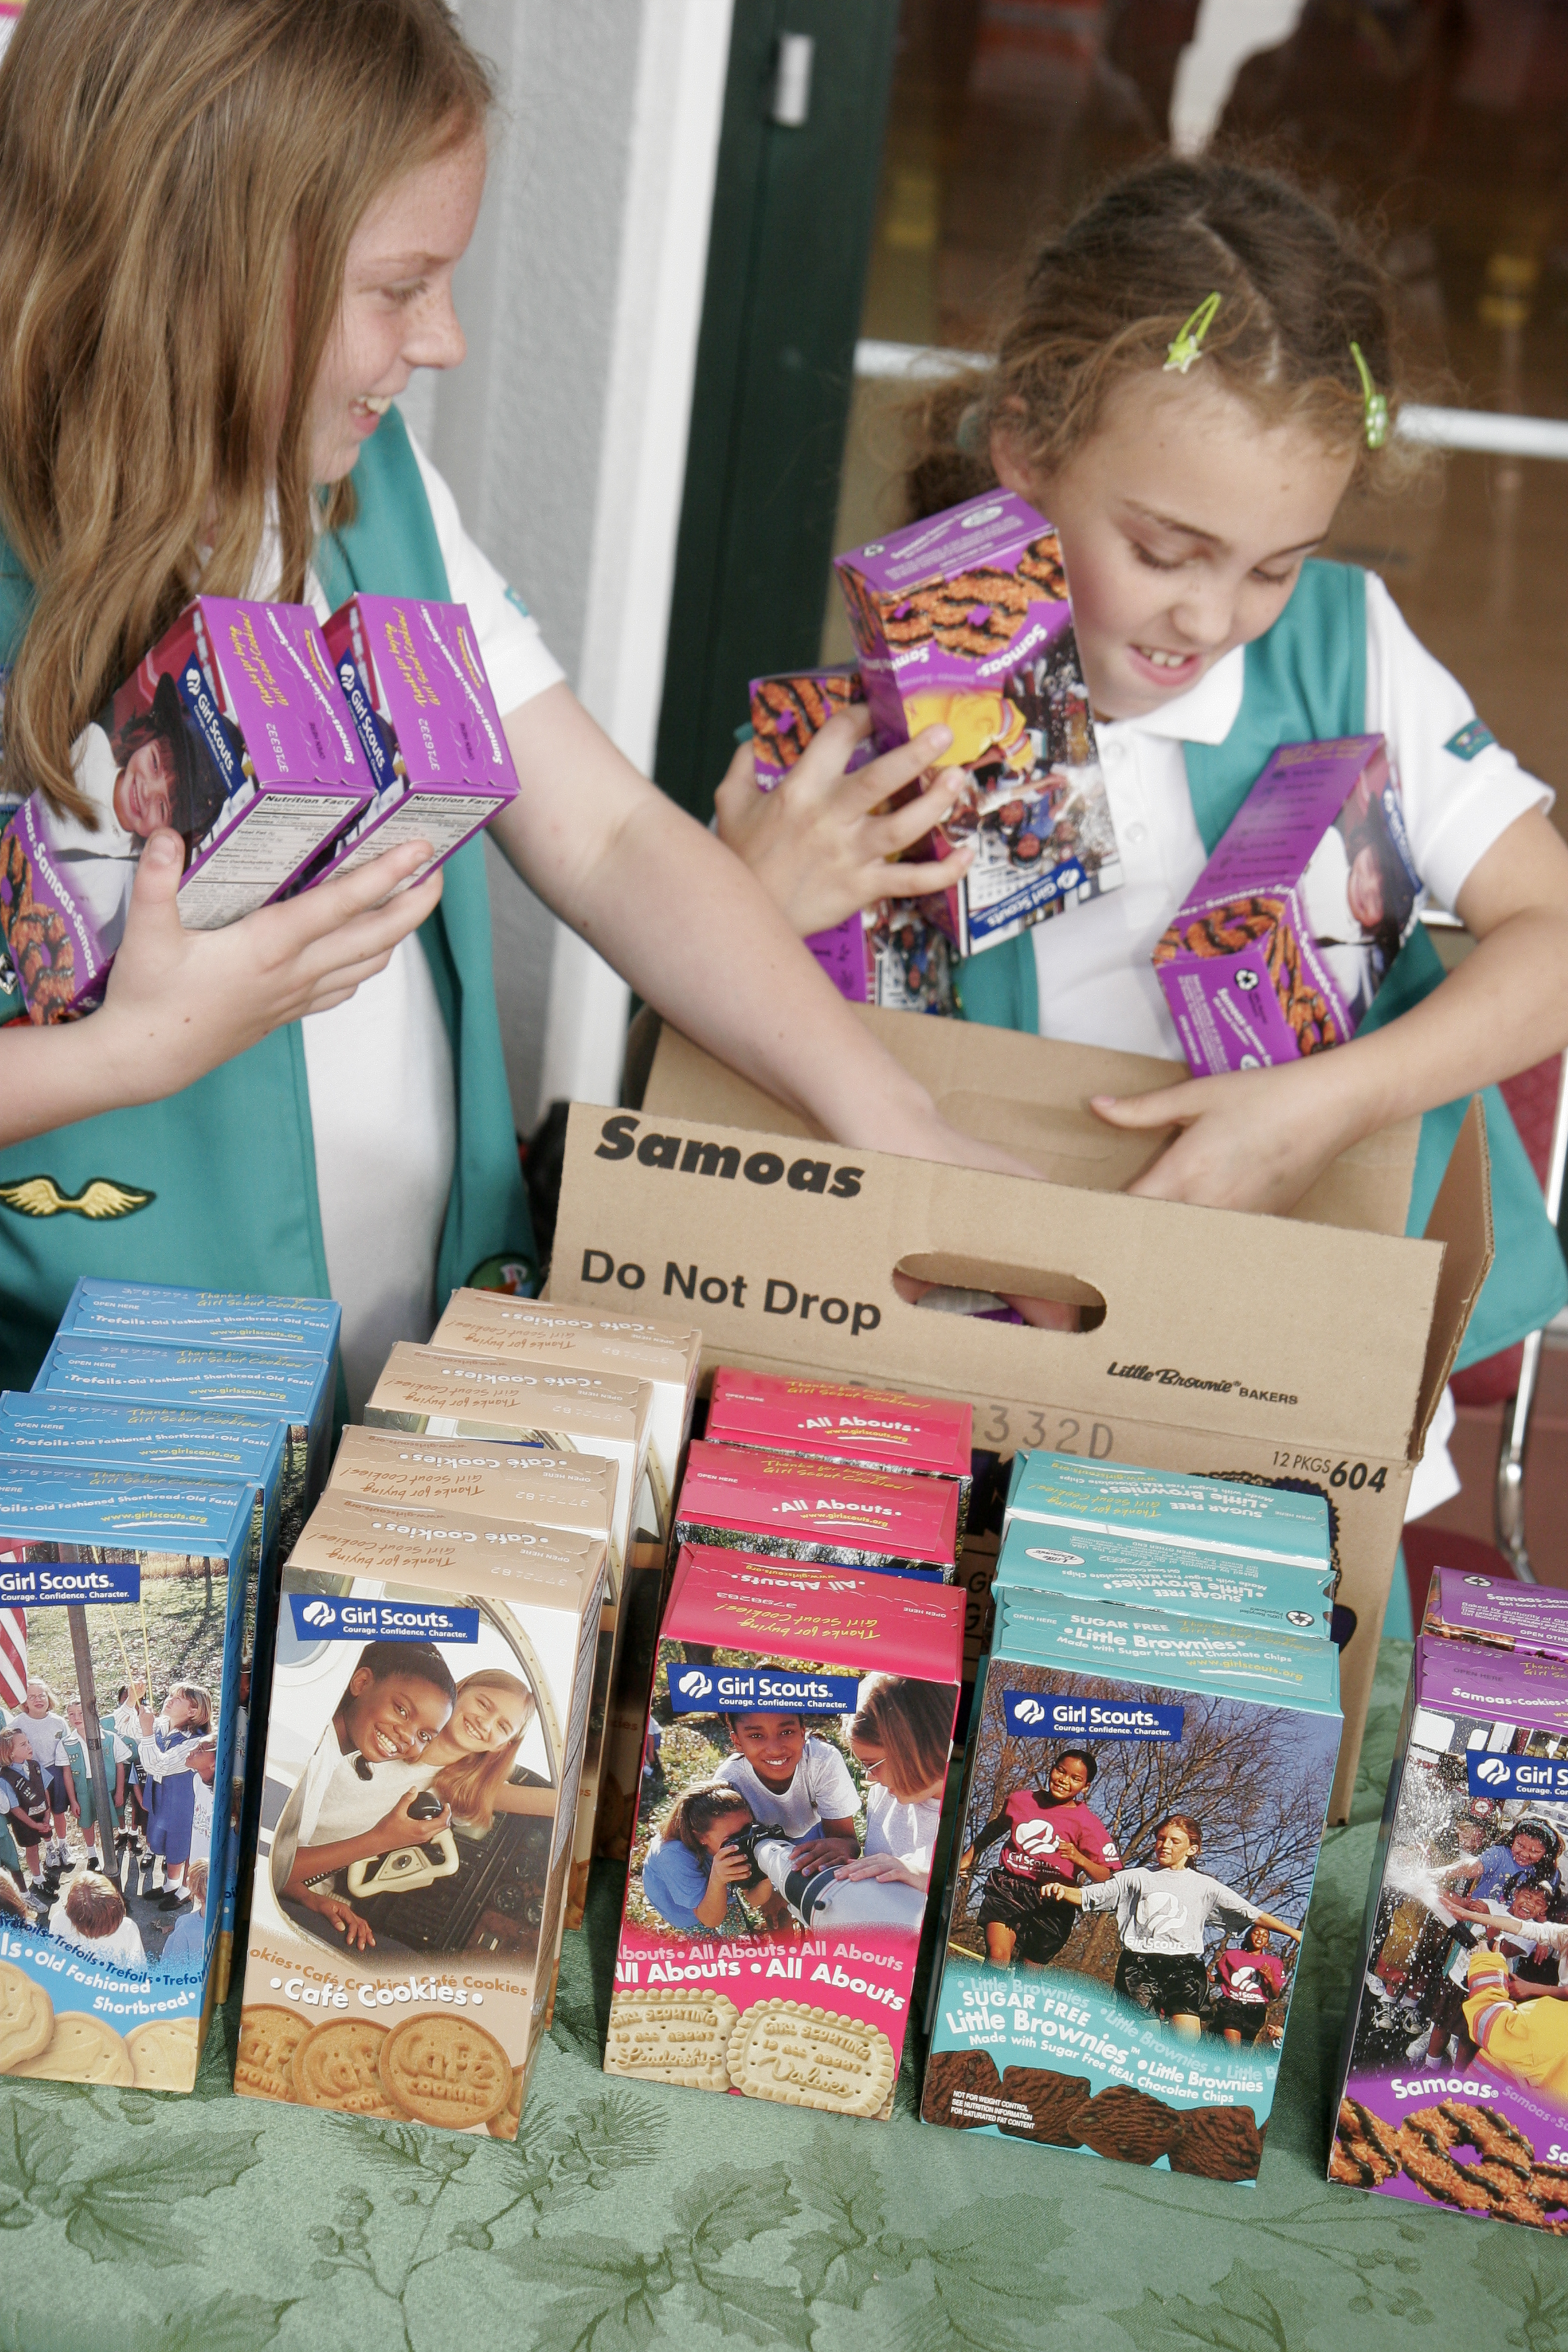 Girl Scouts selling boxes of cookies